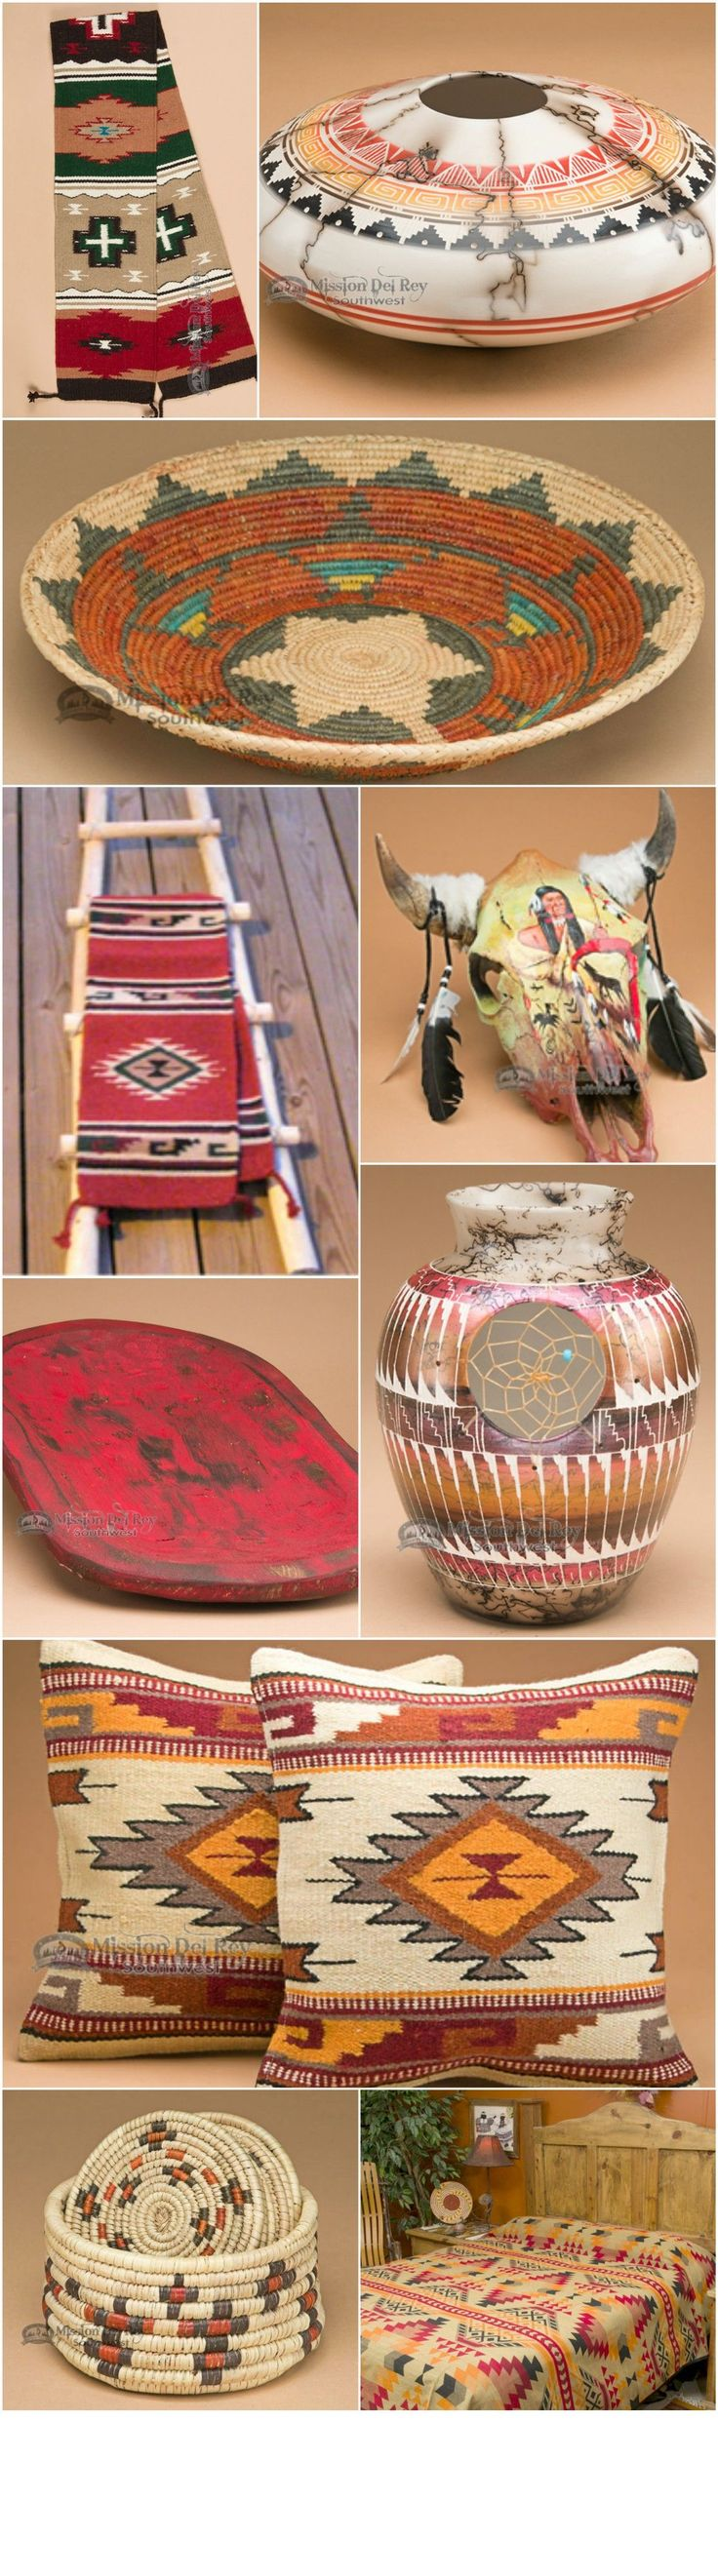 Southwest decor is a very popular style of home decorating.  The beautiful colors and designs of southwest style are an easy way to give your home a rustic look.  If you like southwestern style decor, you will love our southwestern rugs, Native American pottery, rustic Kiva ladders and southwest and western bedding.  See our entire collection of southwest decor at http://www.missiondelrey.com/.